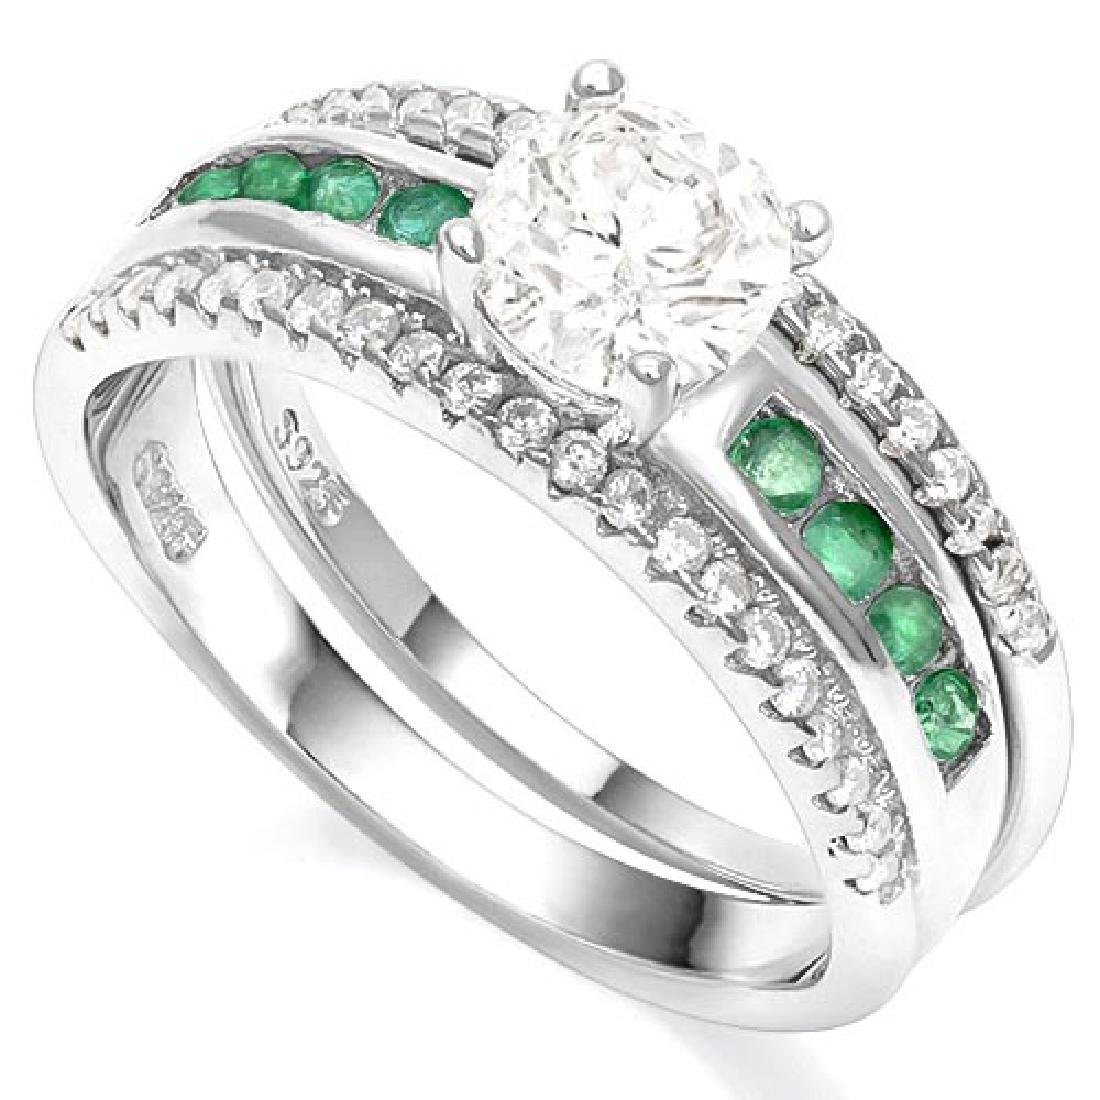 WHITE TOPAZ & 1/3 CTW EMERALD 925 STERLING SILVER RING